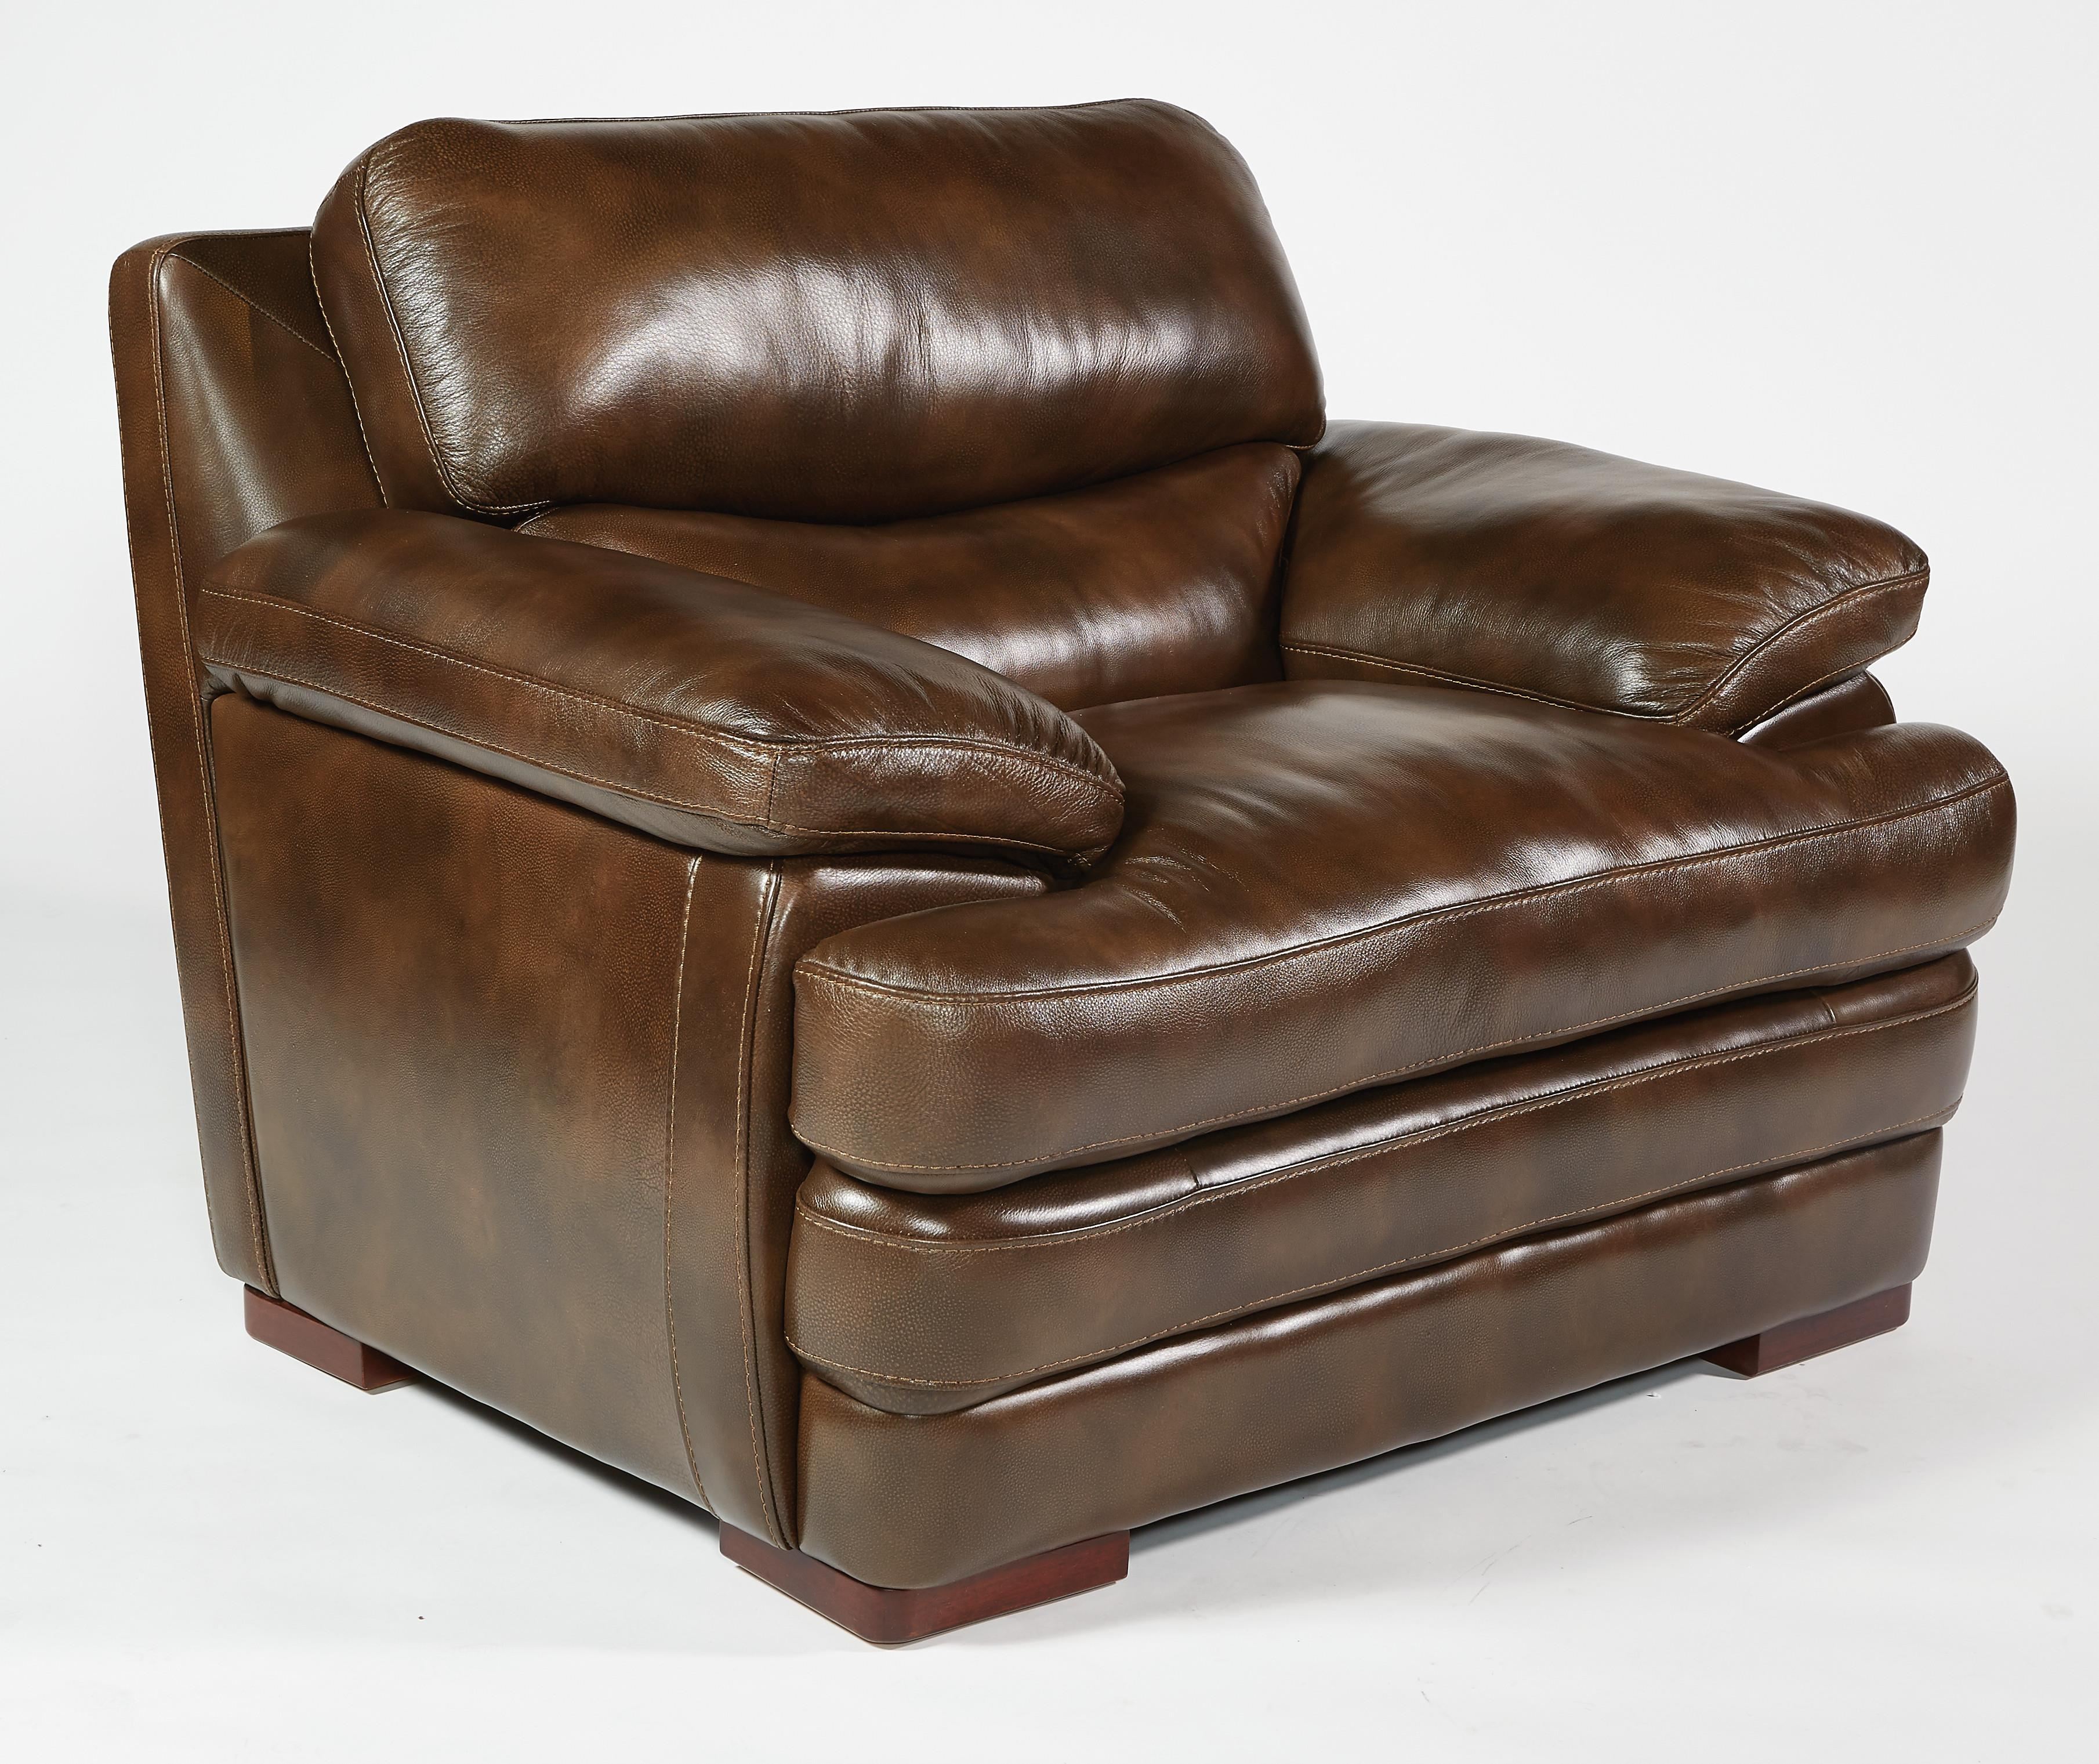 Flexsteel Latitudes - Dylan Leather Chair - Item Number: 1127-10-908-70